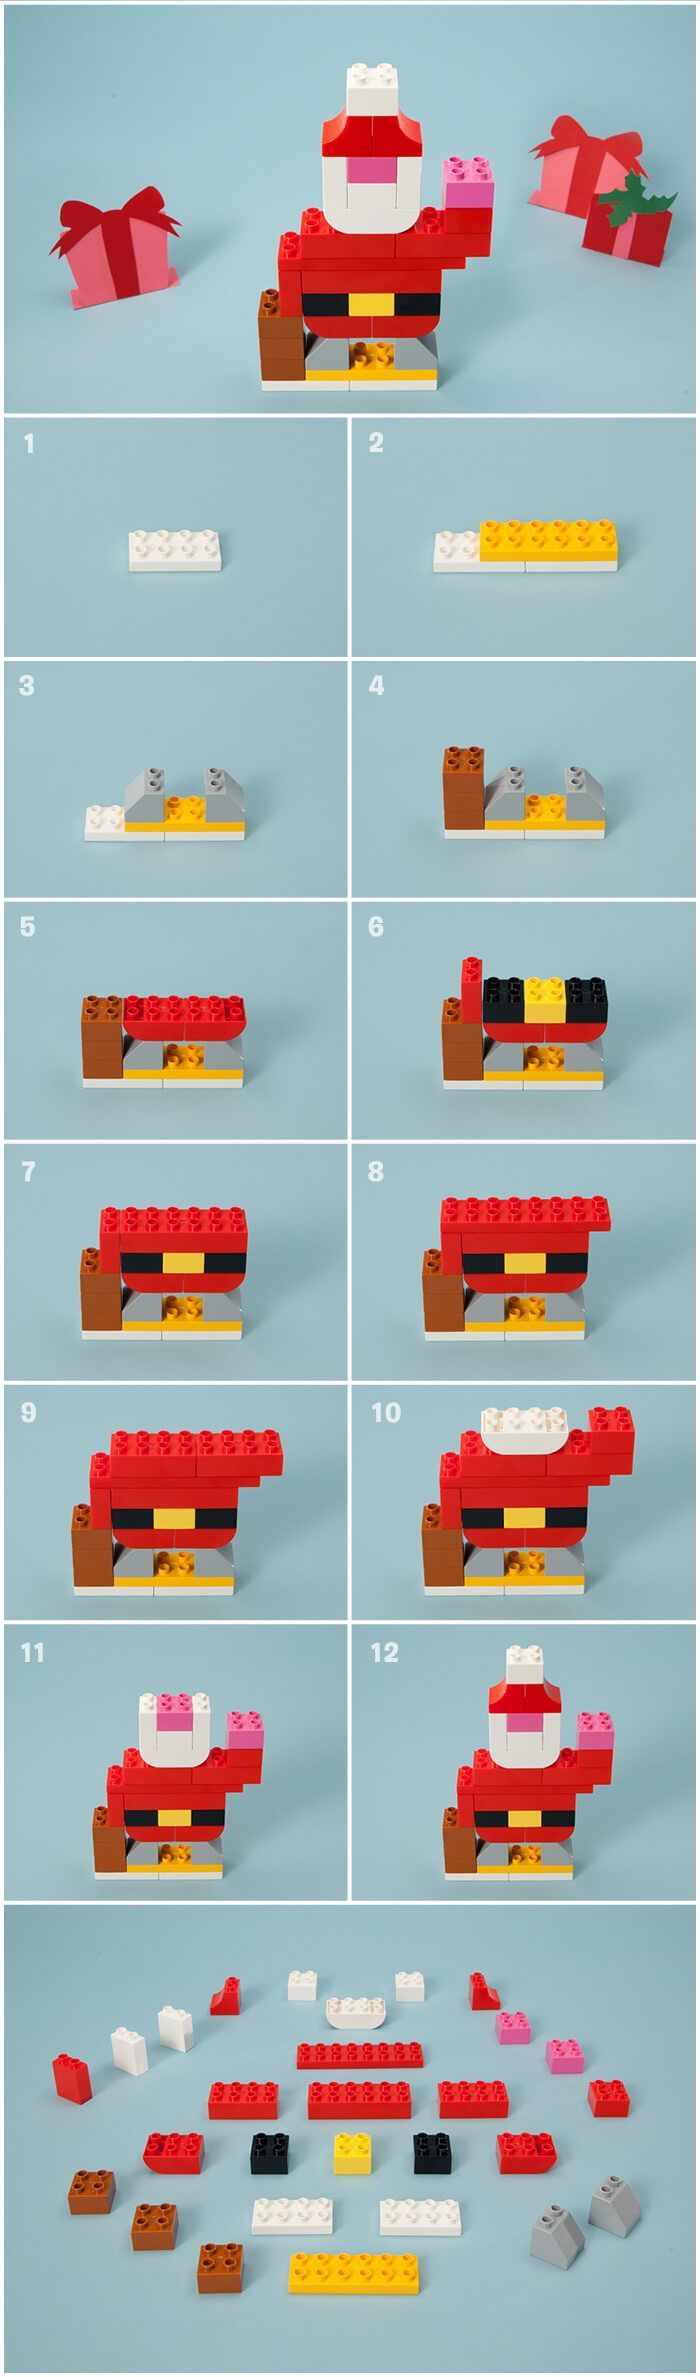 DIY Santa - stocking stuffers and holiday decorations - Articles - Family LEGO.com